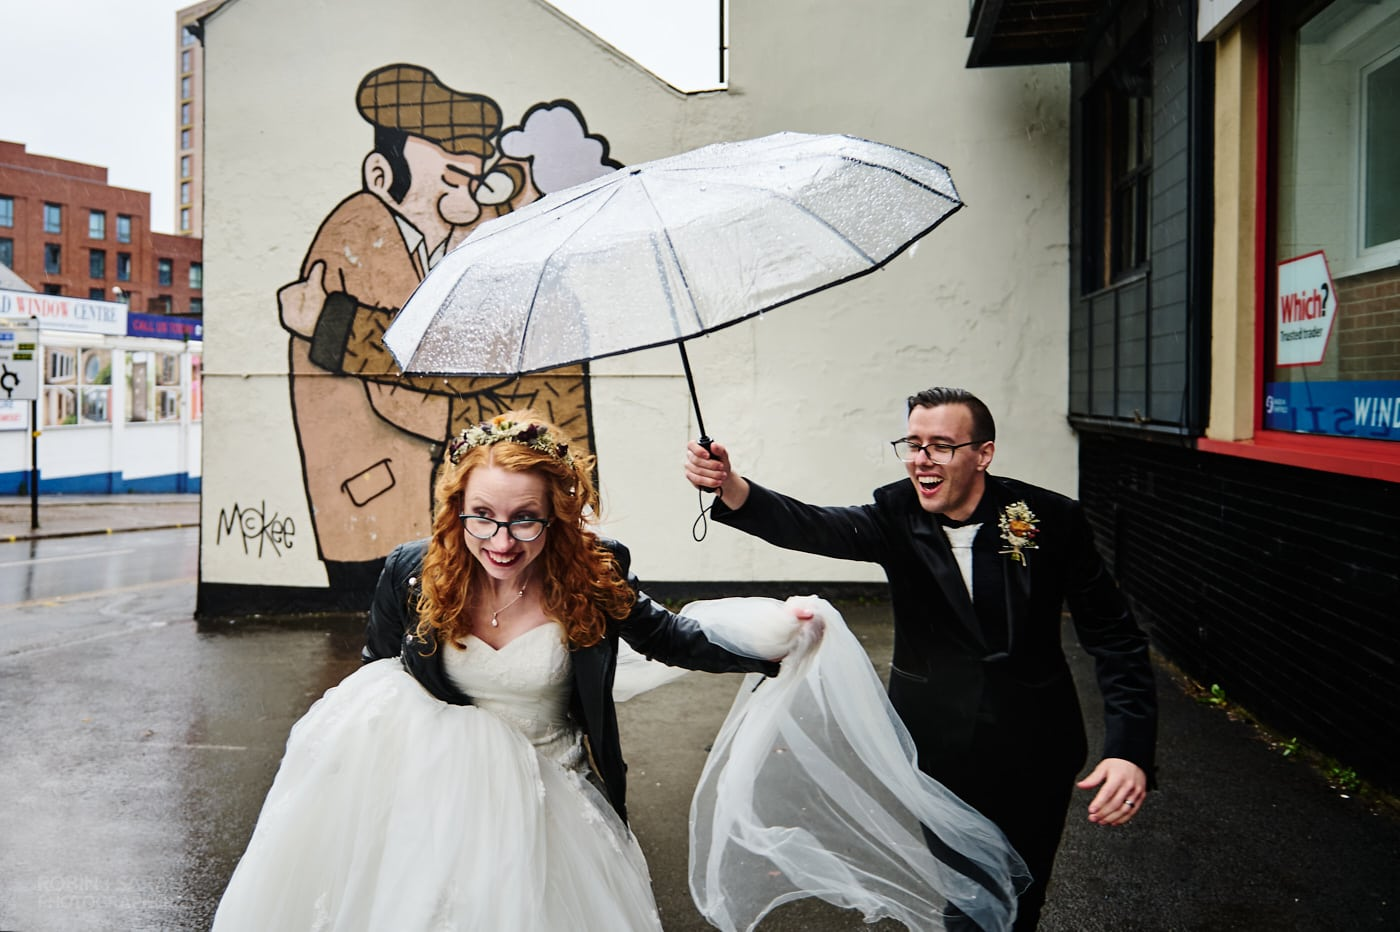 Bride and groom laughing as they run under umbrella with artwork 'The Snog' by Pete McKee in background